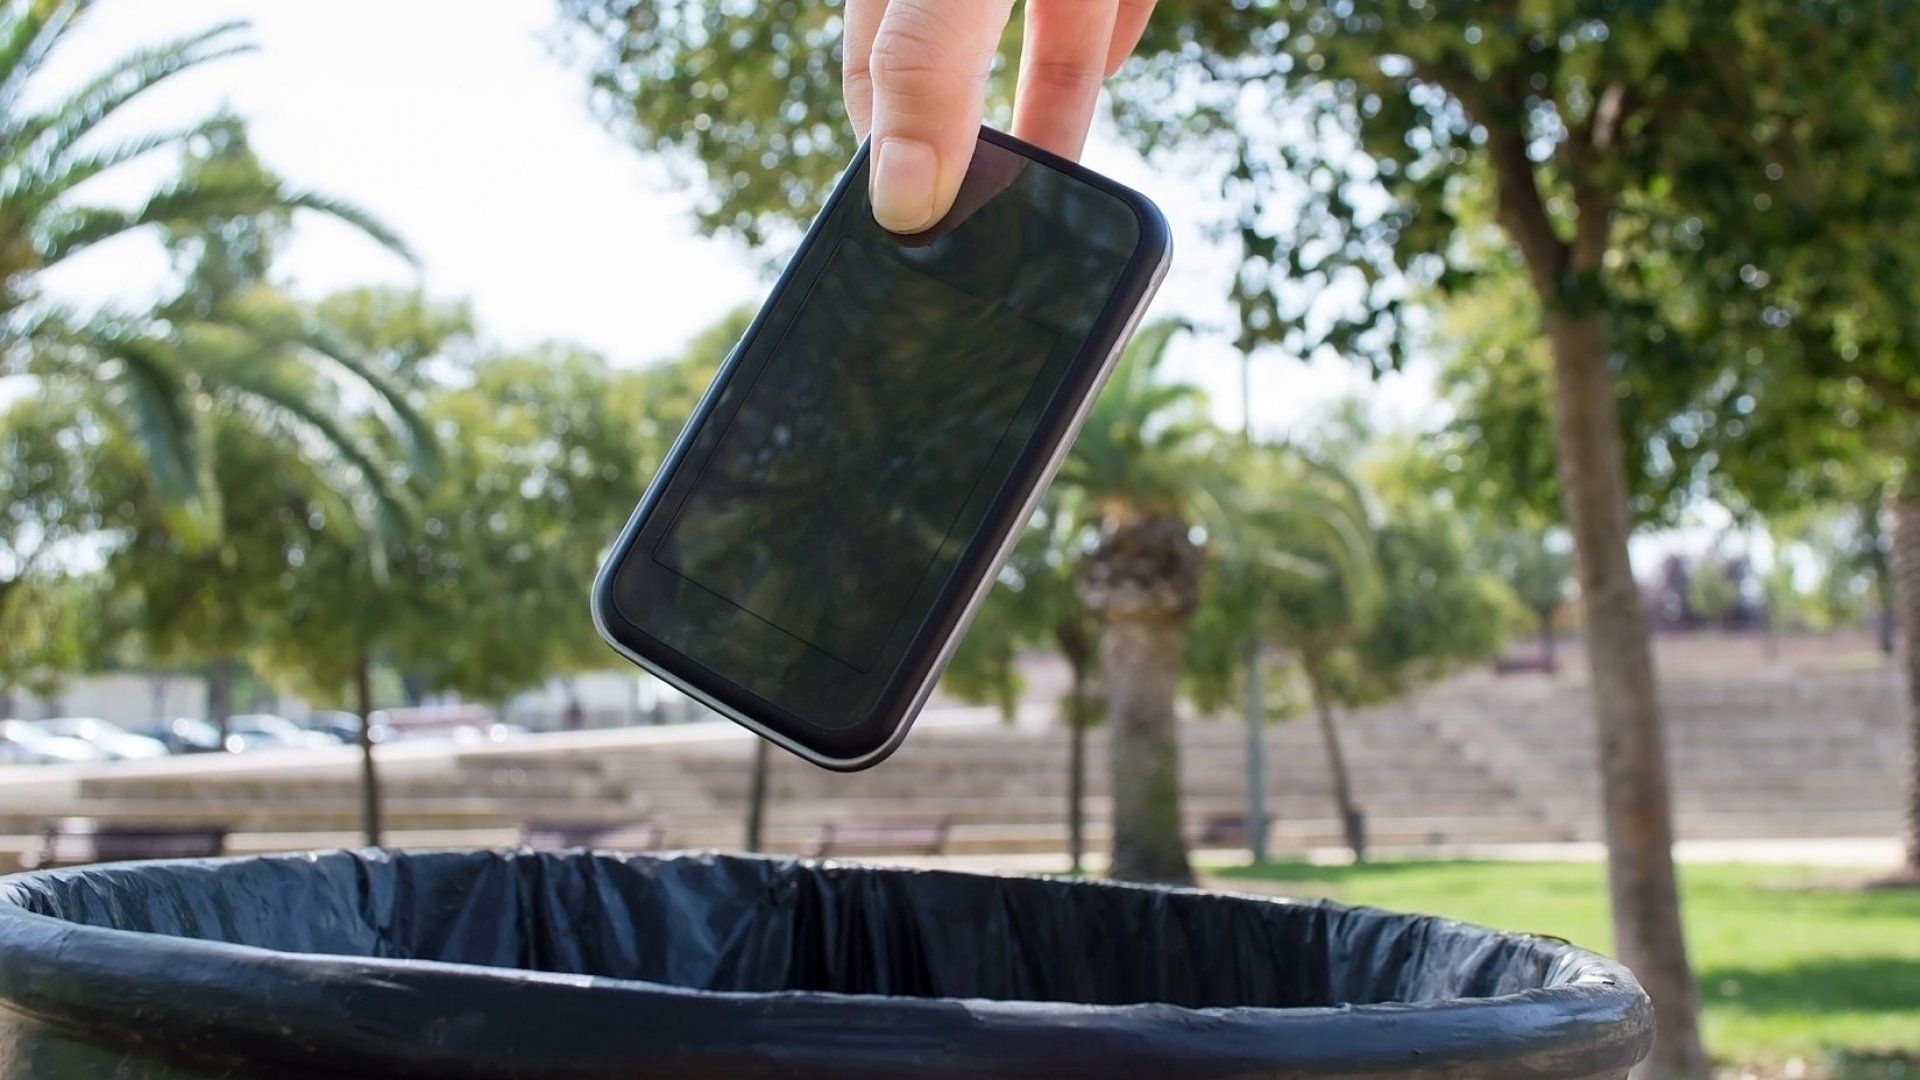 Would You Give Up Your Smartphone for a Year for $100,000? (You'll Have to Take a Lie Detector Test to Prove It)